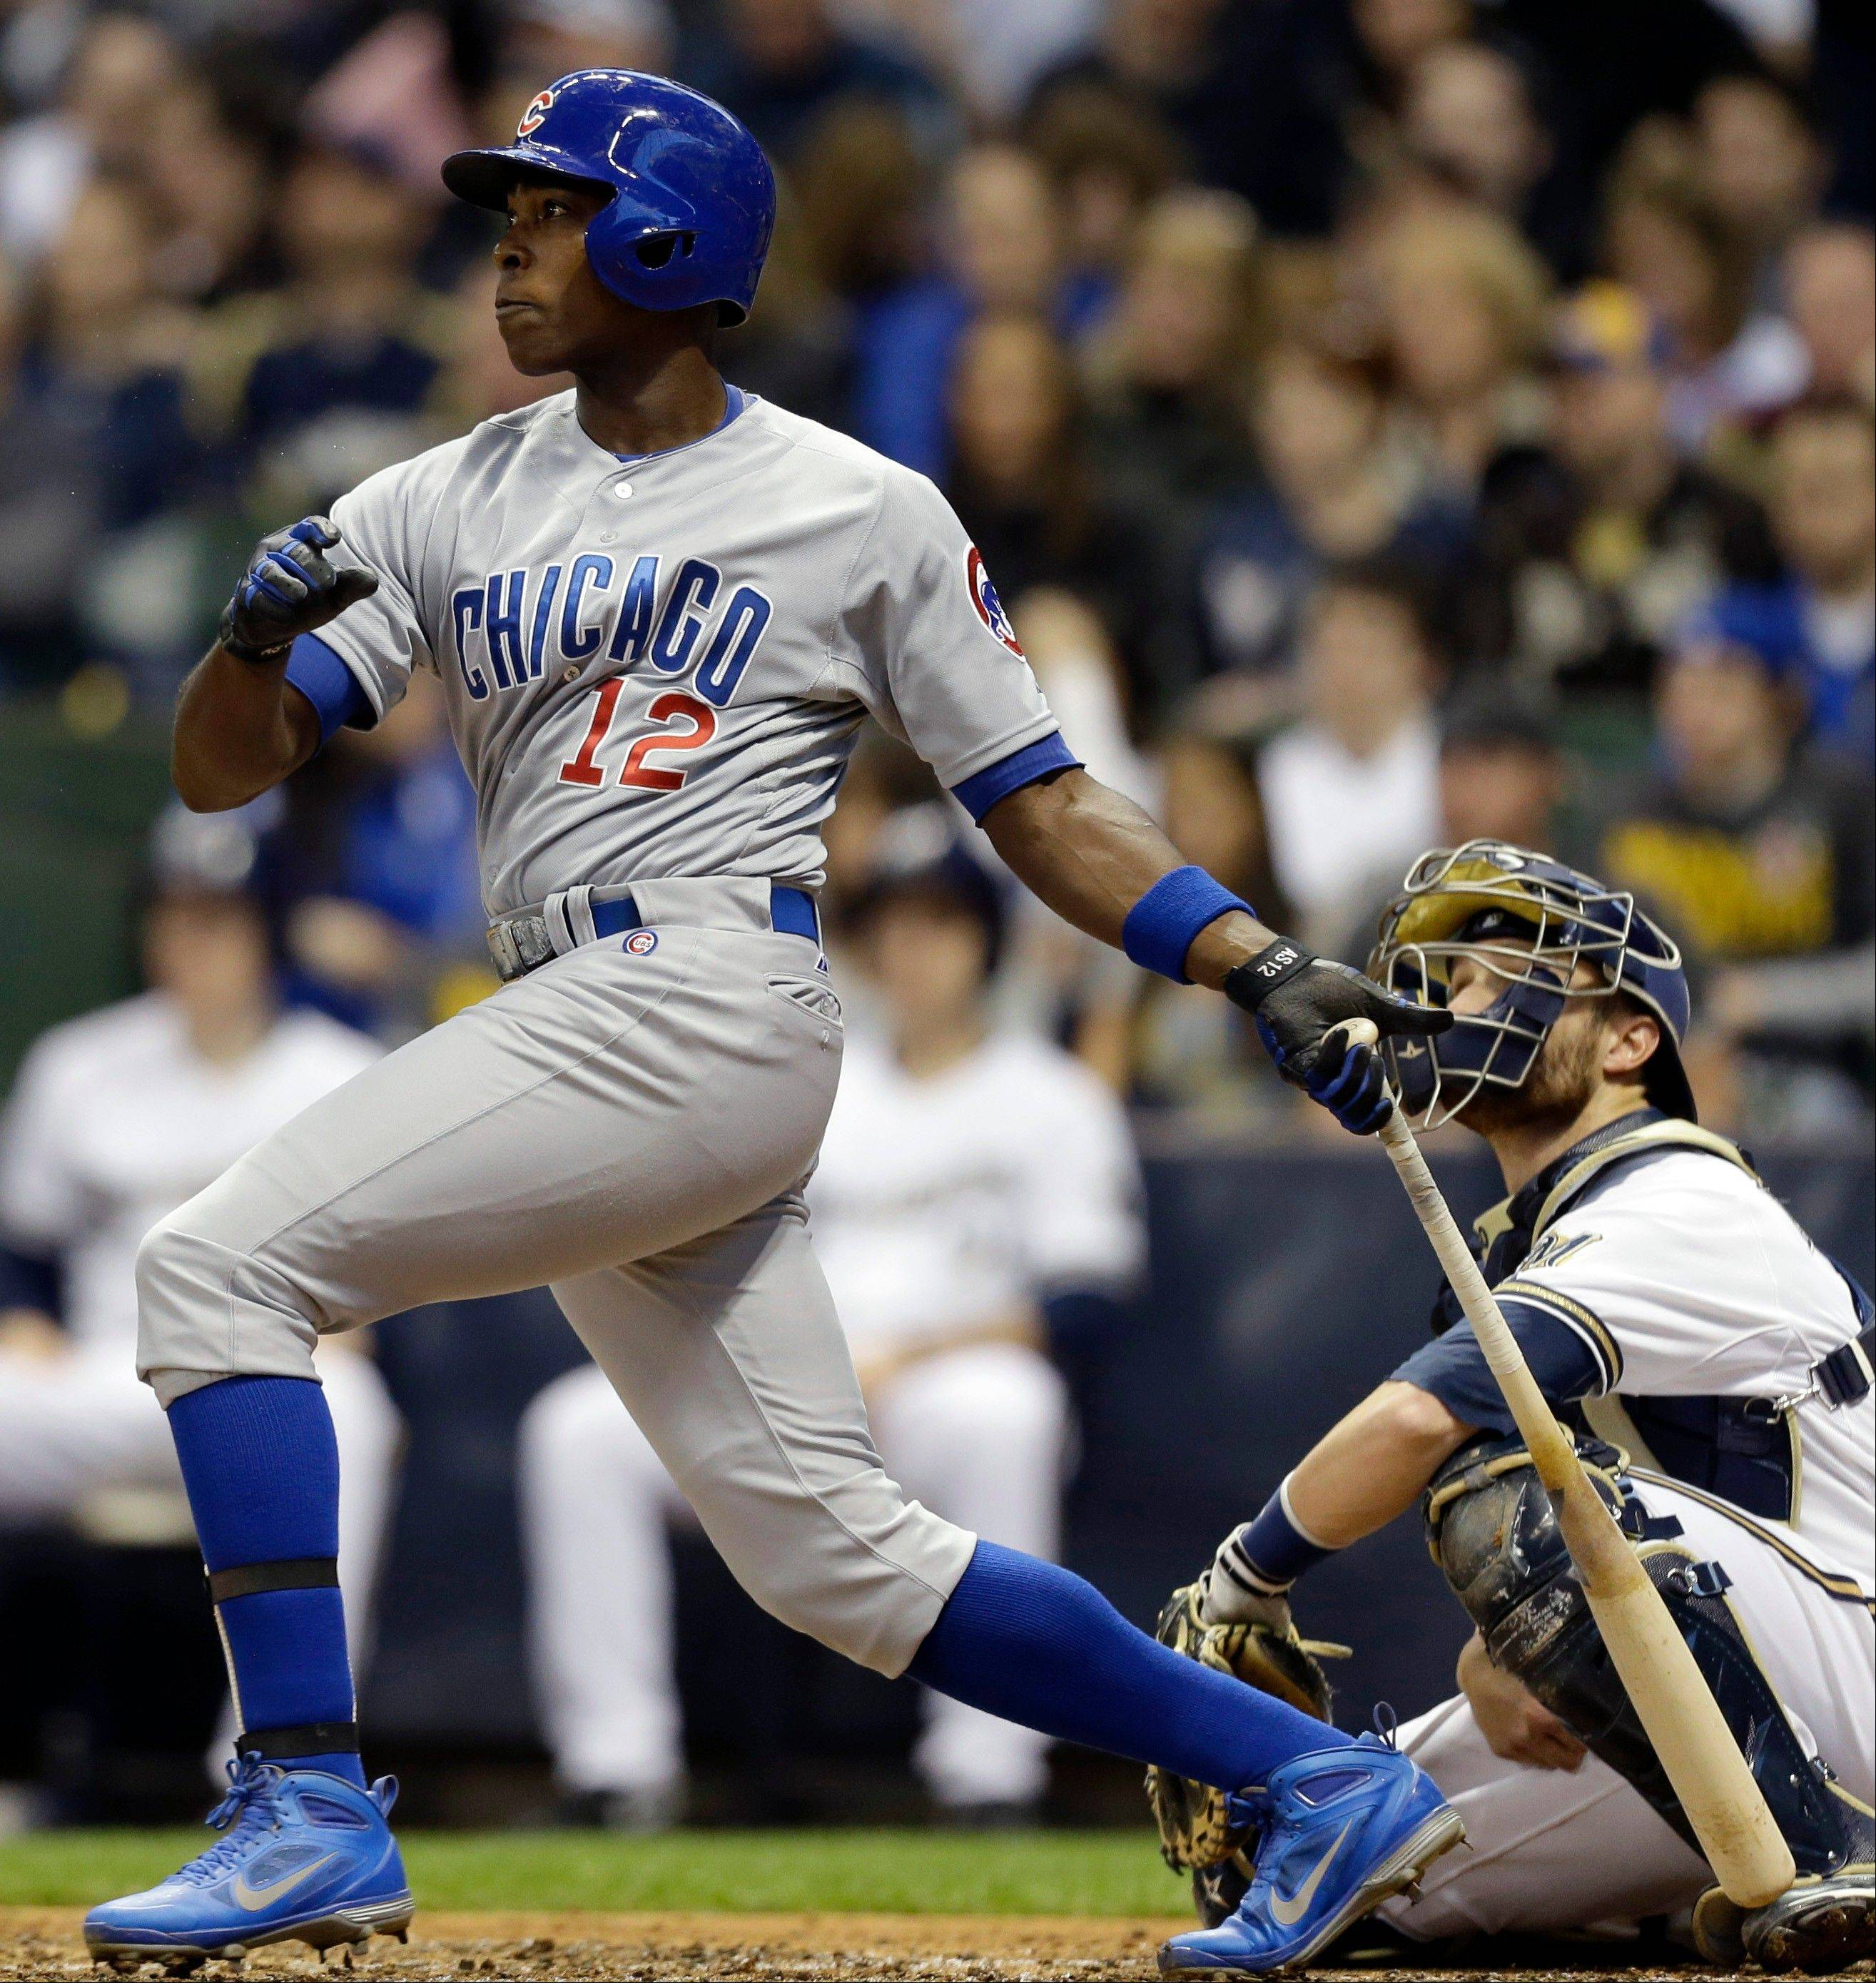 Left fielder Alfonso Soriano is the one player who has figured out how to handle playing for the Cubs, says Len Kasper.